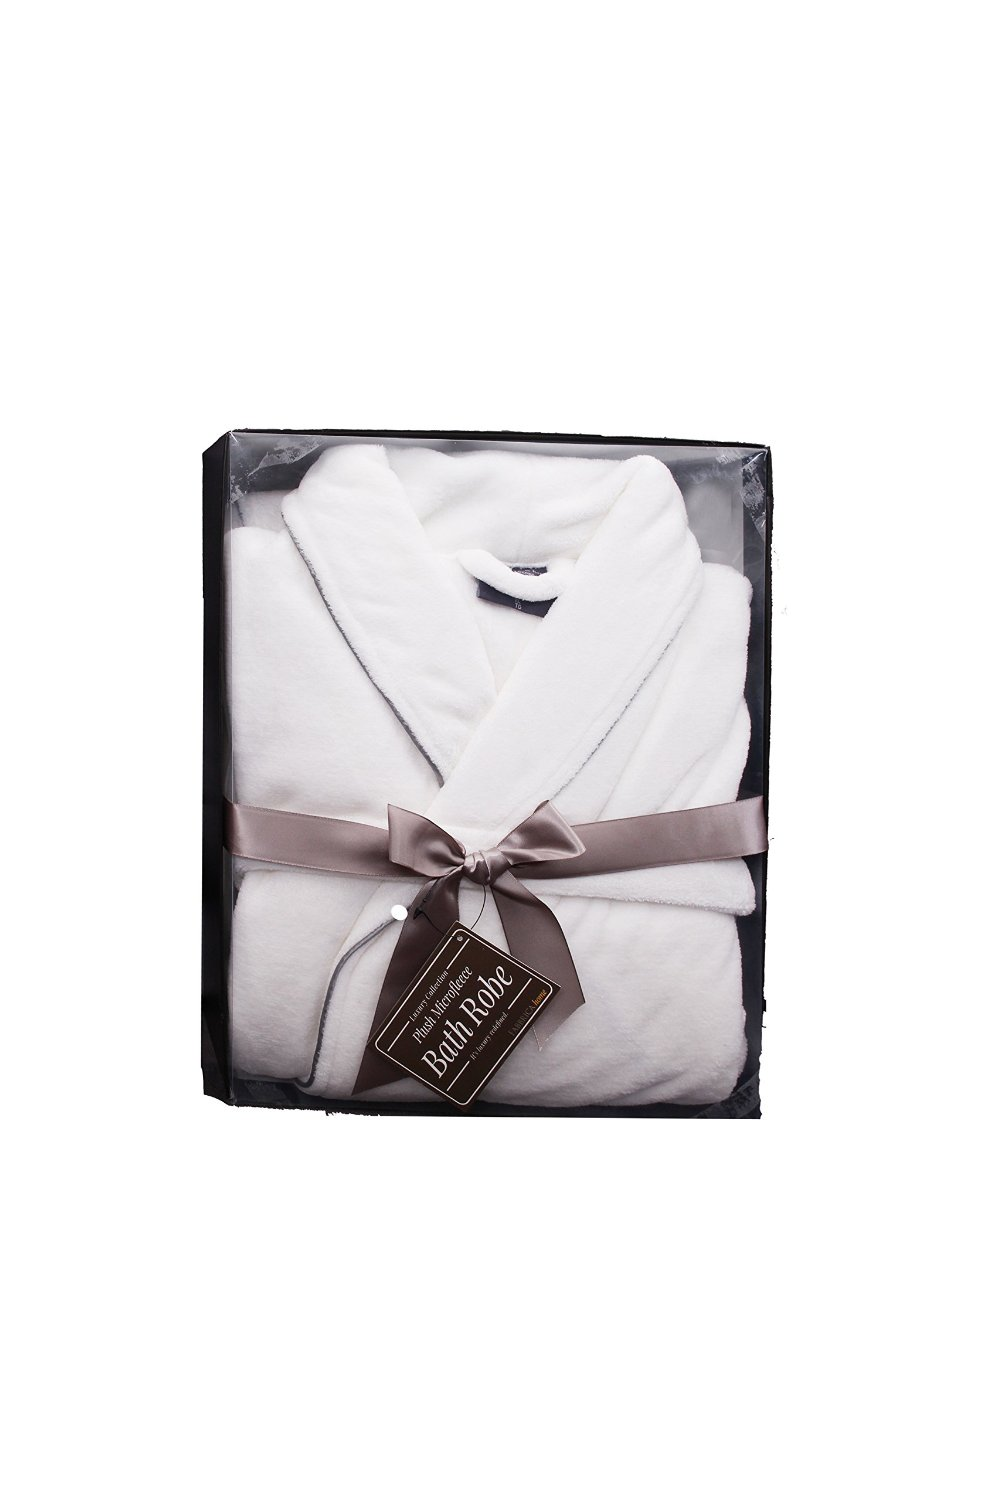 bathrobe in gift box.jpg